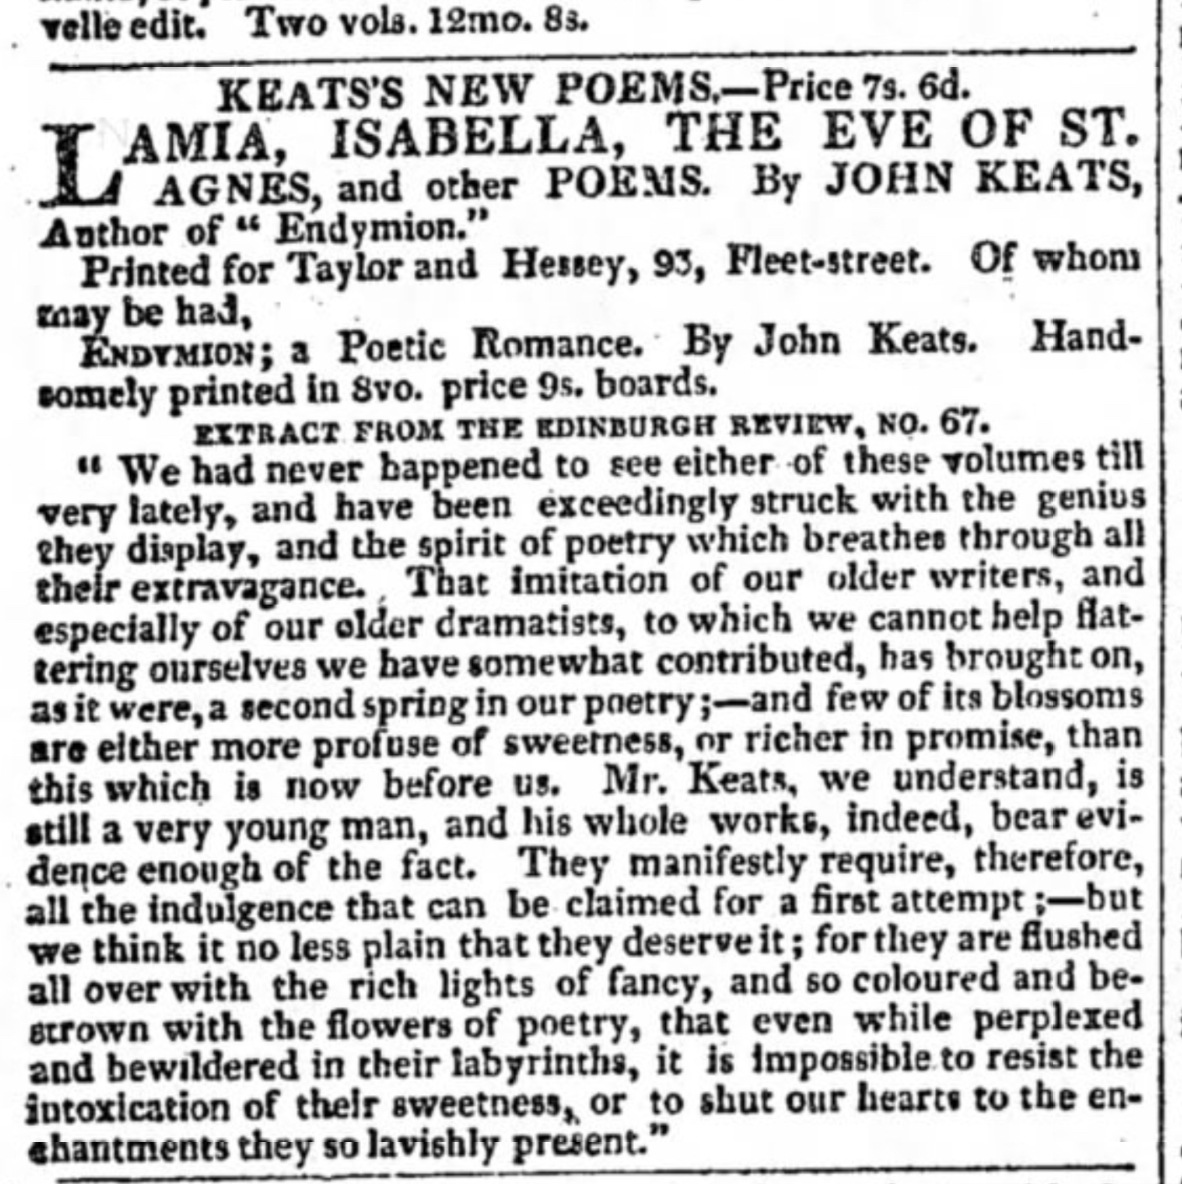 Keats's New Poems, advertised in The Morning           Chronicle, 28 Feb 1821, unaware of Keats's death